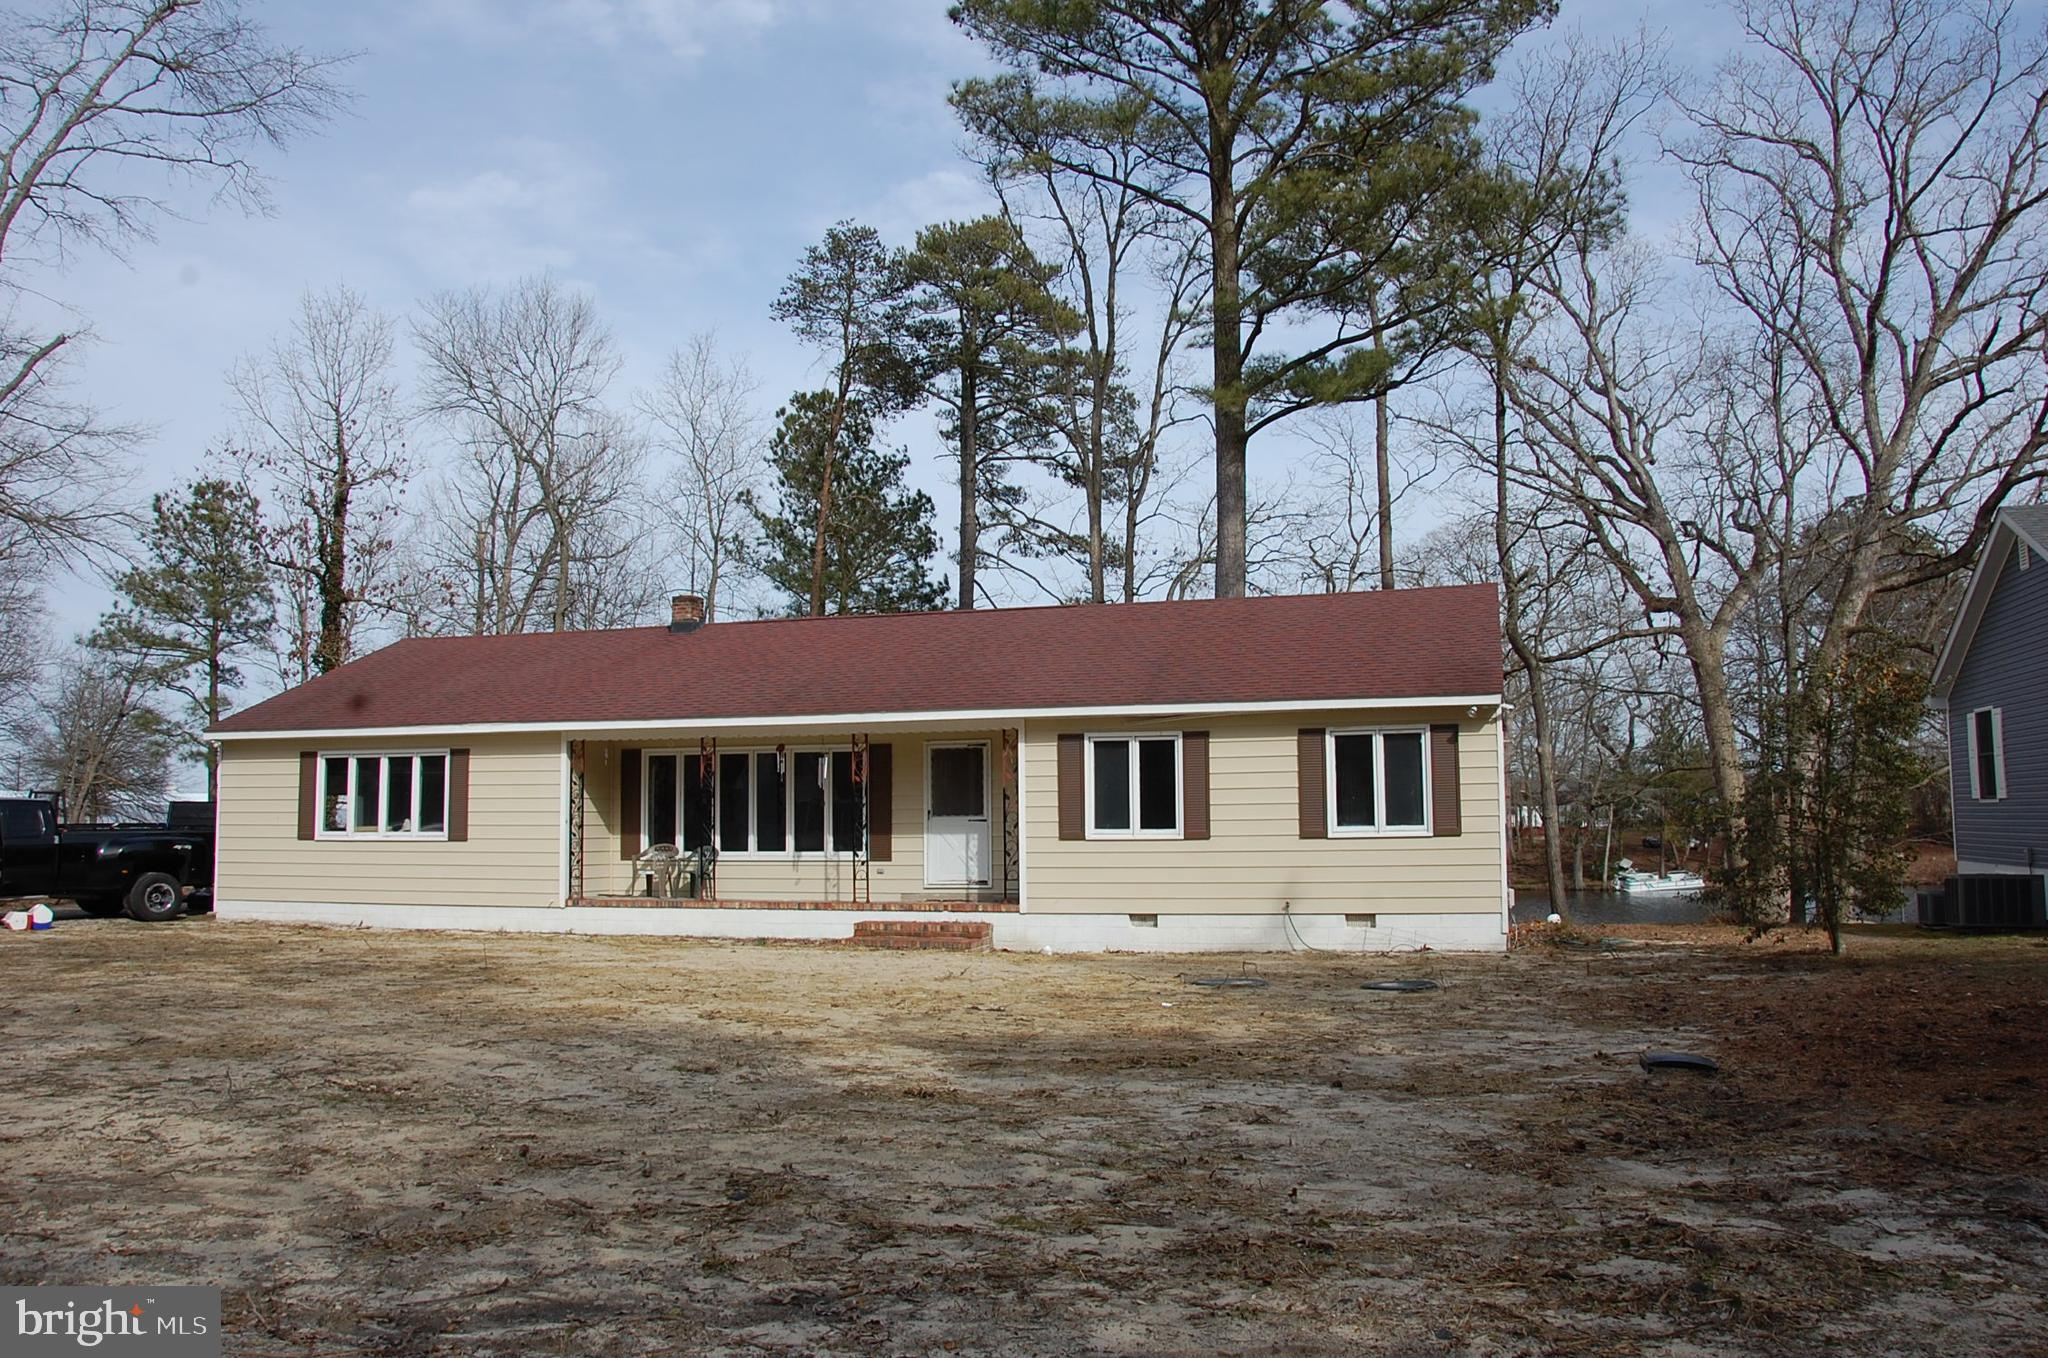 Waterfront home on Horsey Pond,  just West of Laurel.  This 3 bedroom 1 and a half bathroom, 1600 square foot home with a 1 car attached garage. All new well and septic systems.